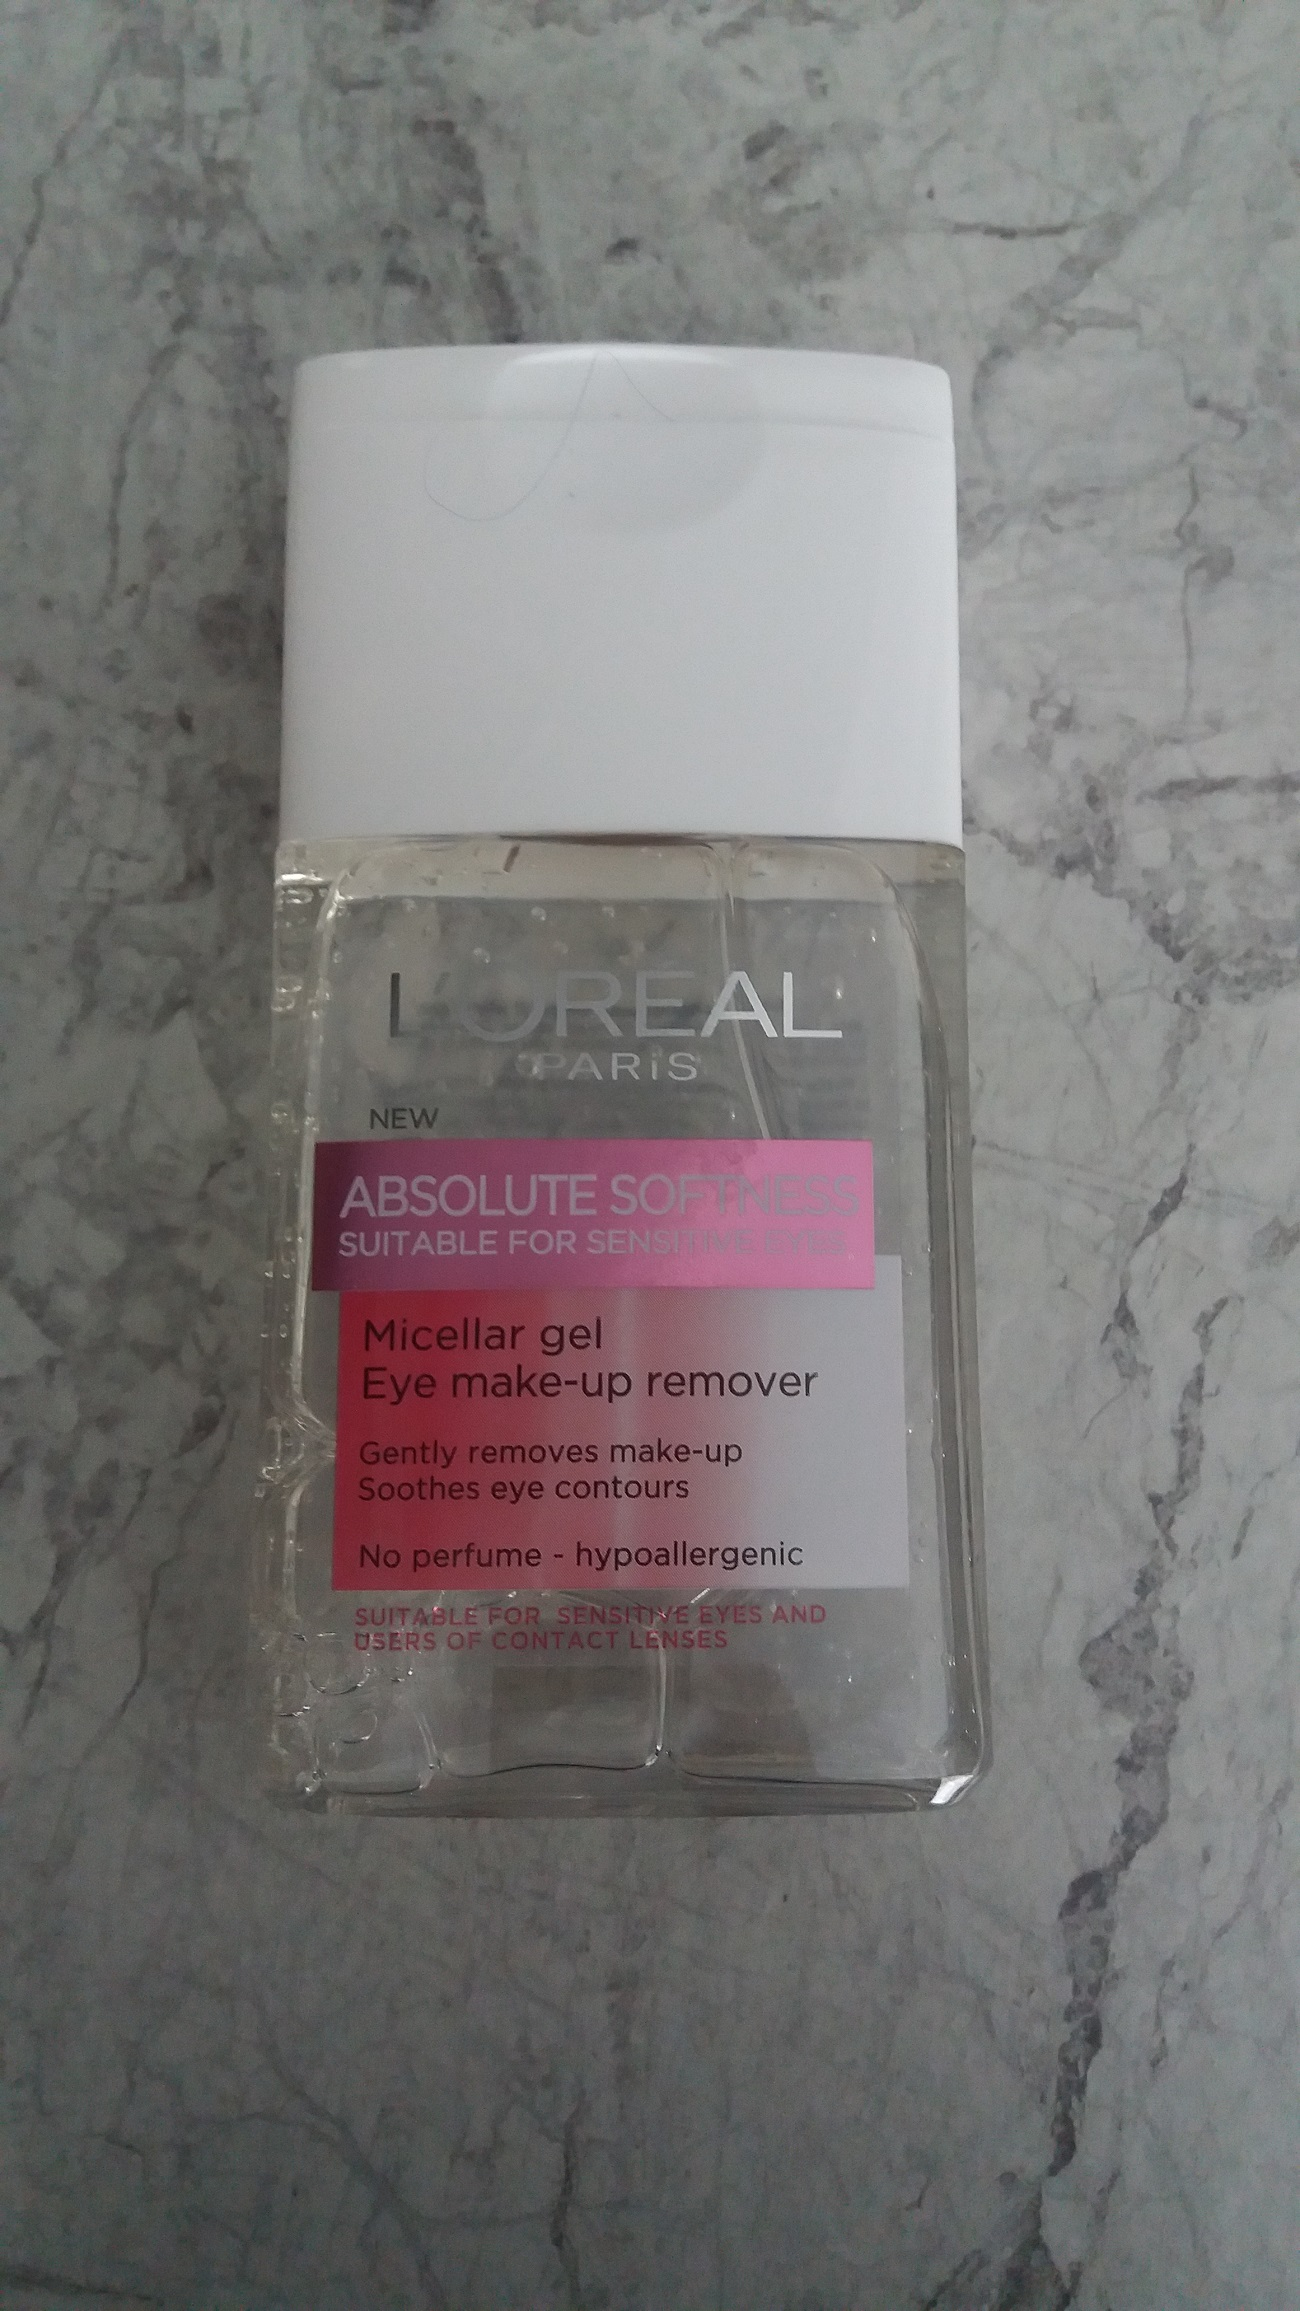 L'Oréal Paris Absolute Softness Micellar Gel Eye make-up remover